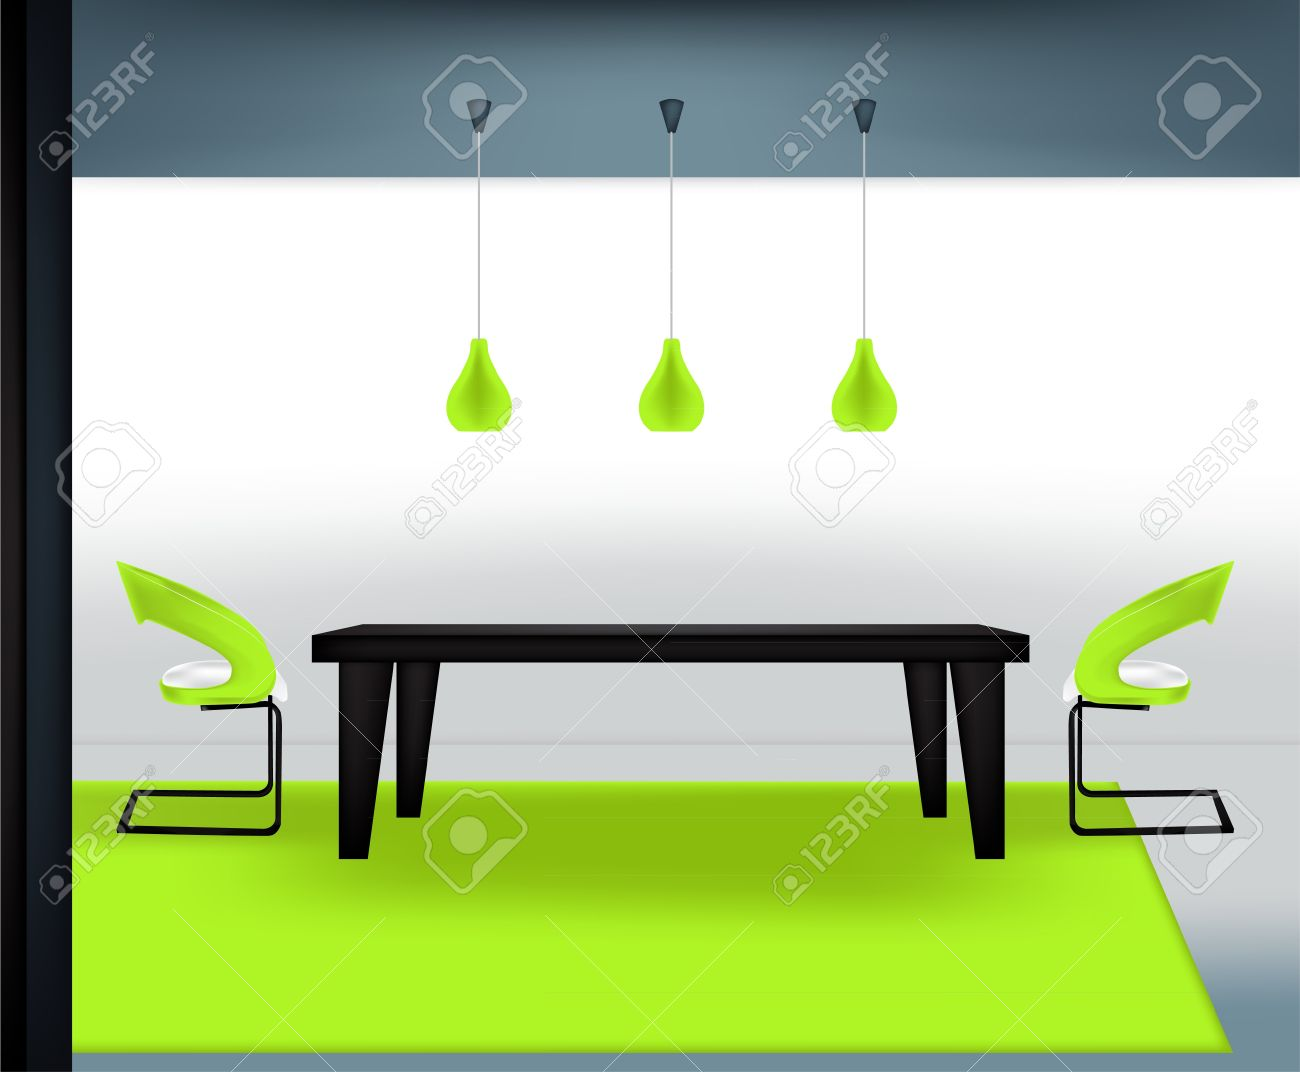 Dining room table and chairs clipart - Dining Table Modern Dining Room